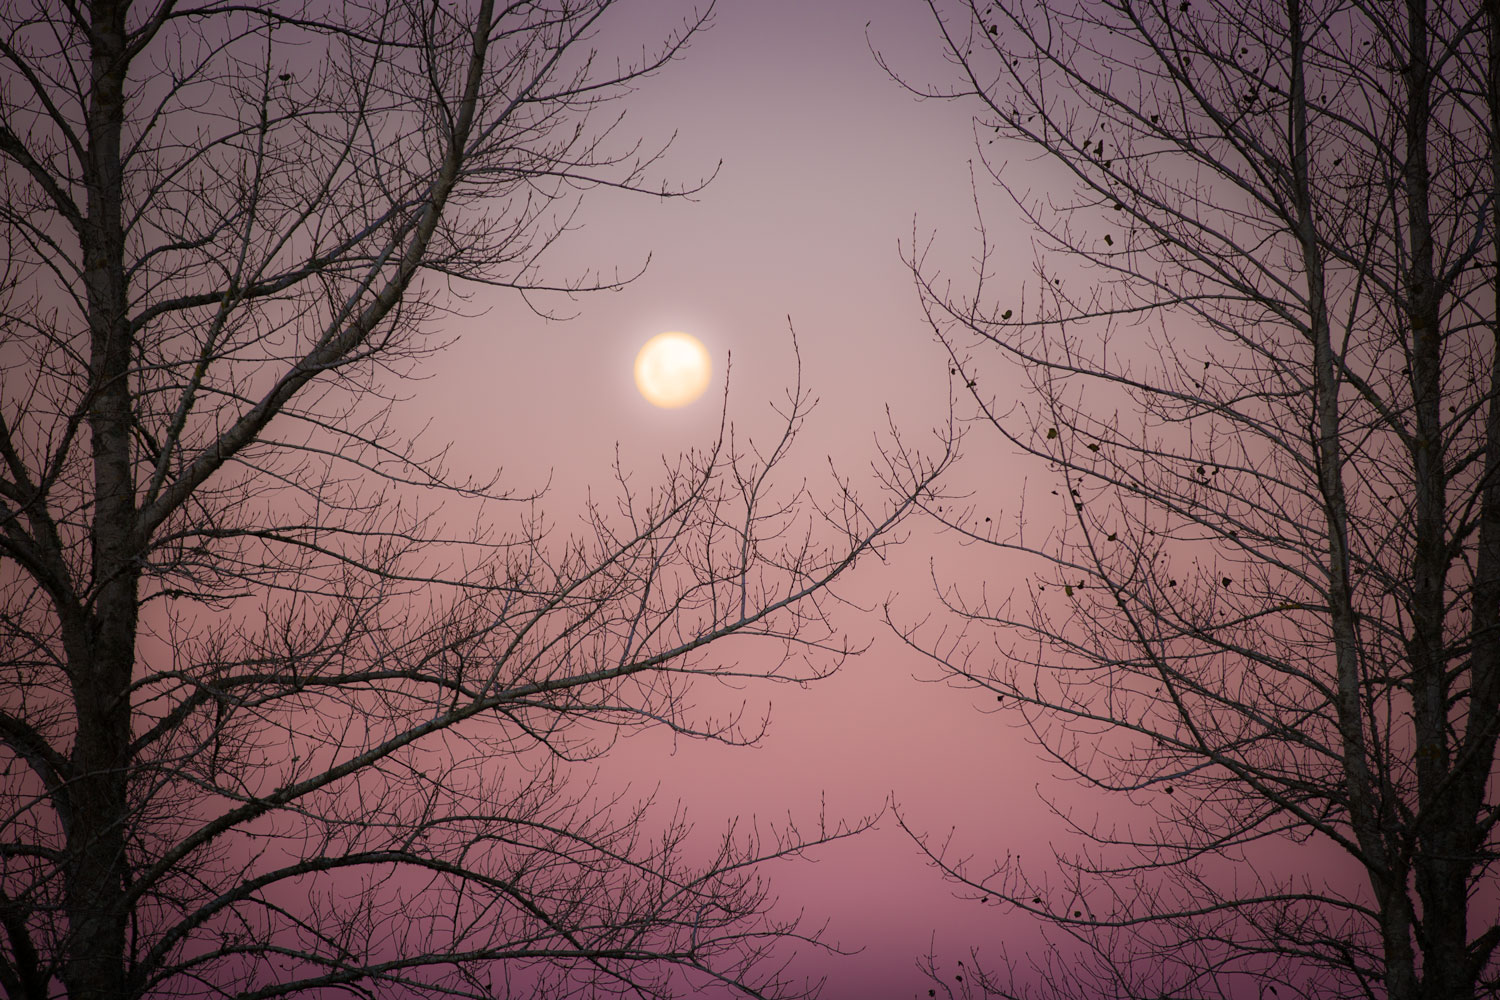 LAST WINTER MOON